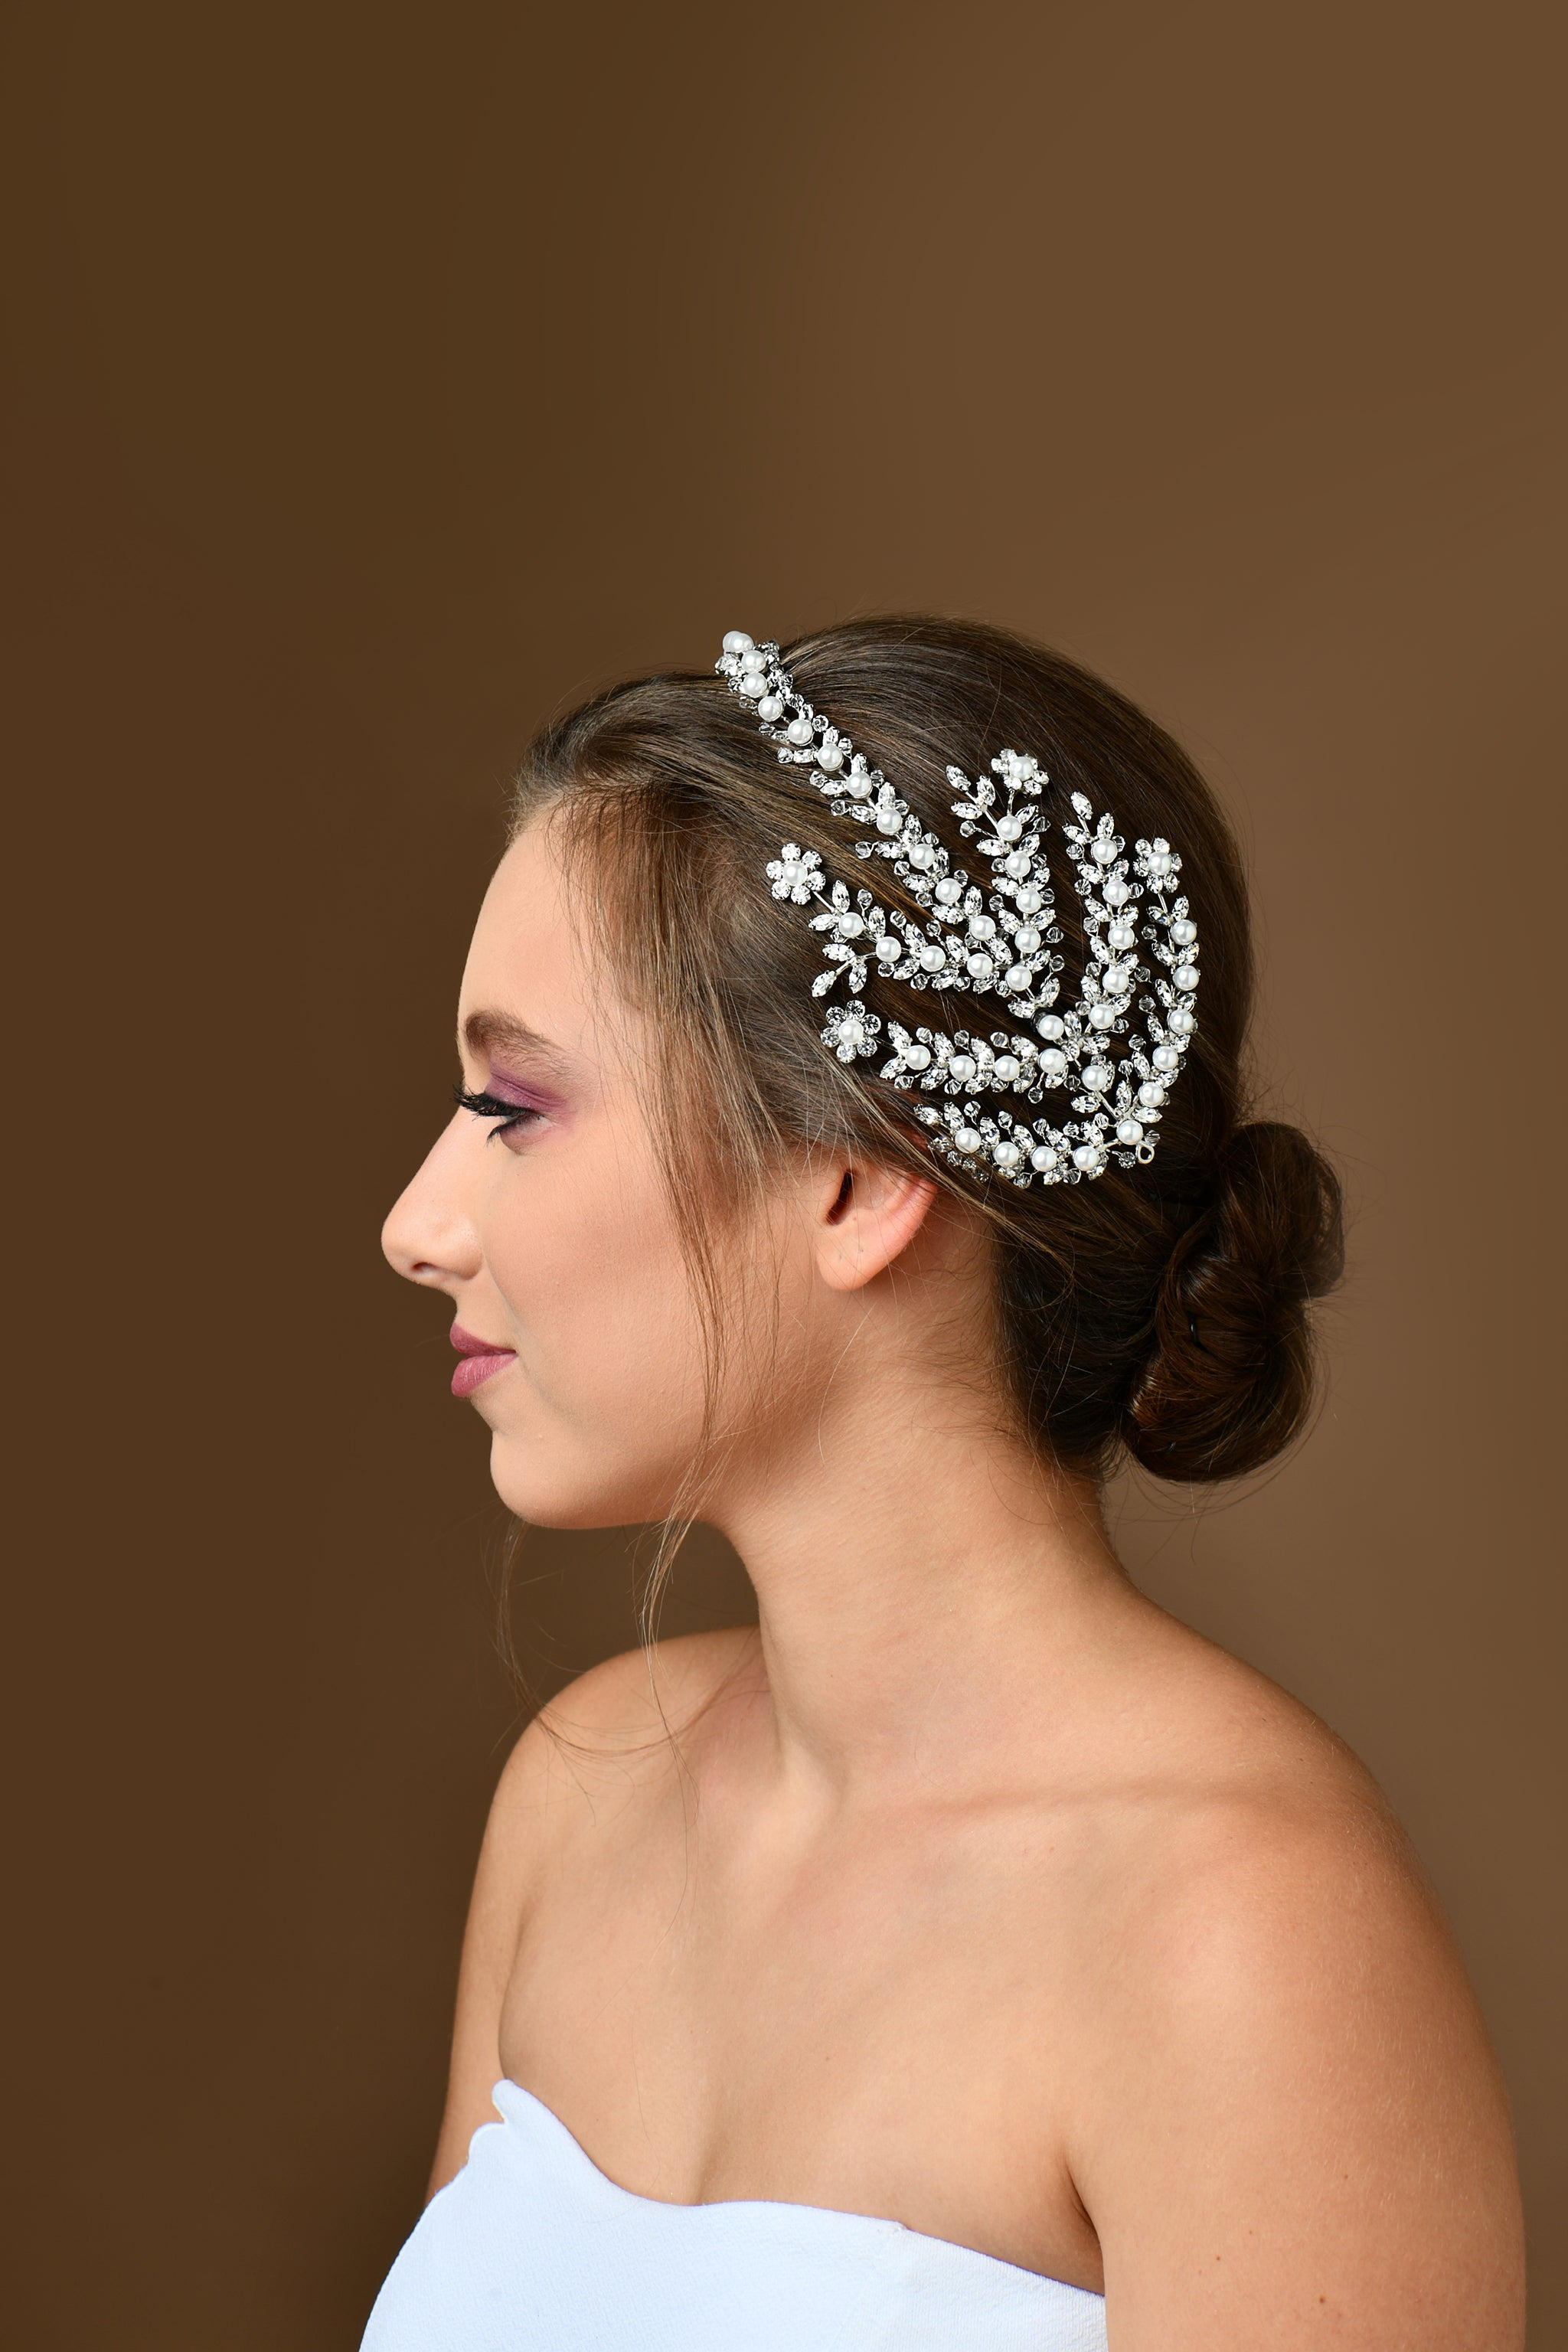 Wedding Hair - Hairstyle - Crown - Tiara - Bride